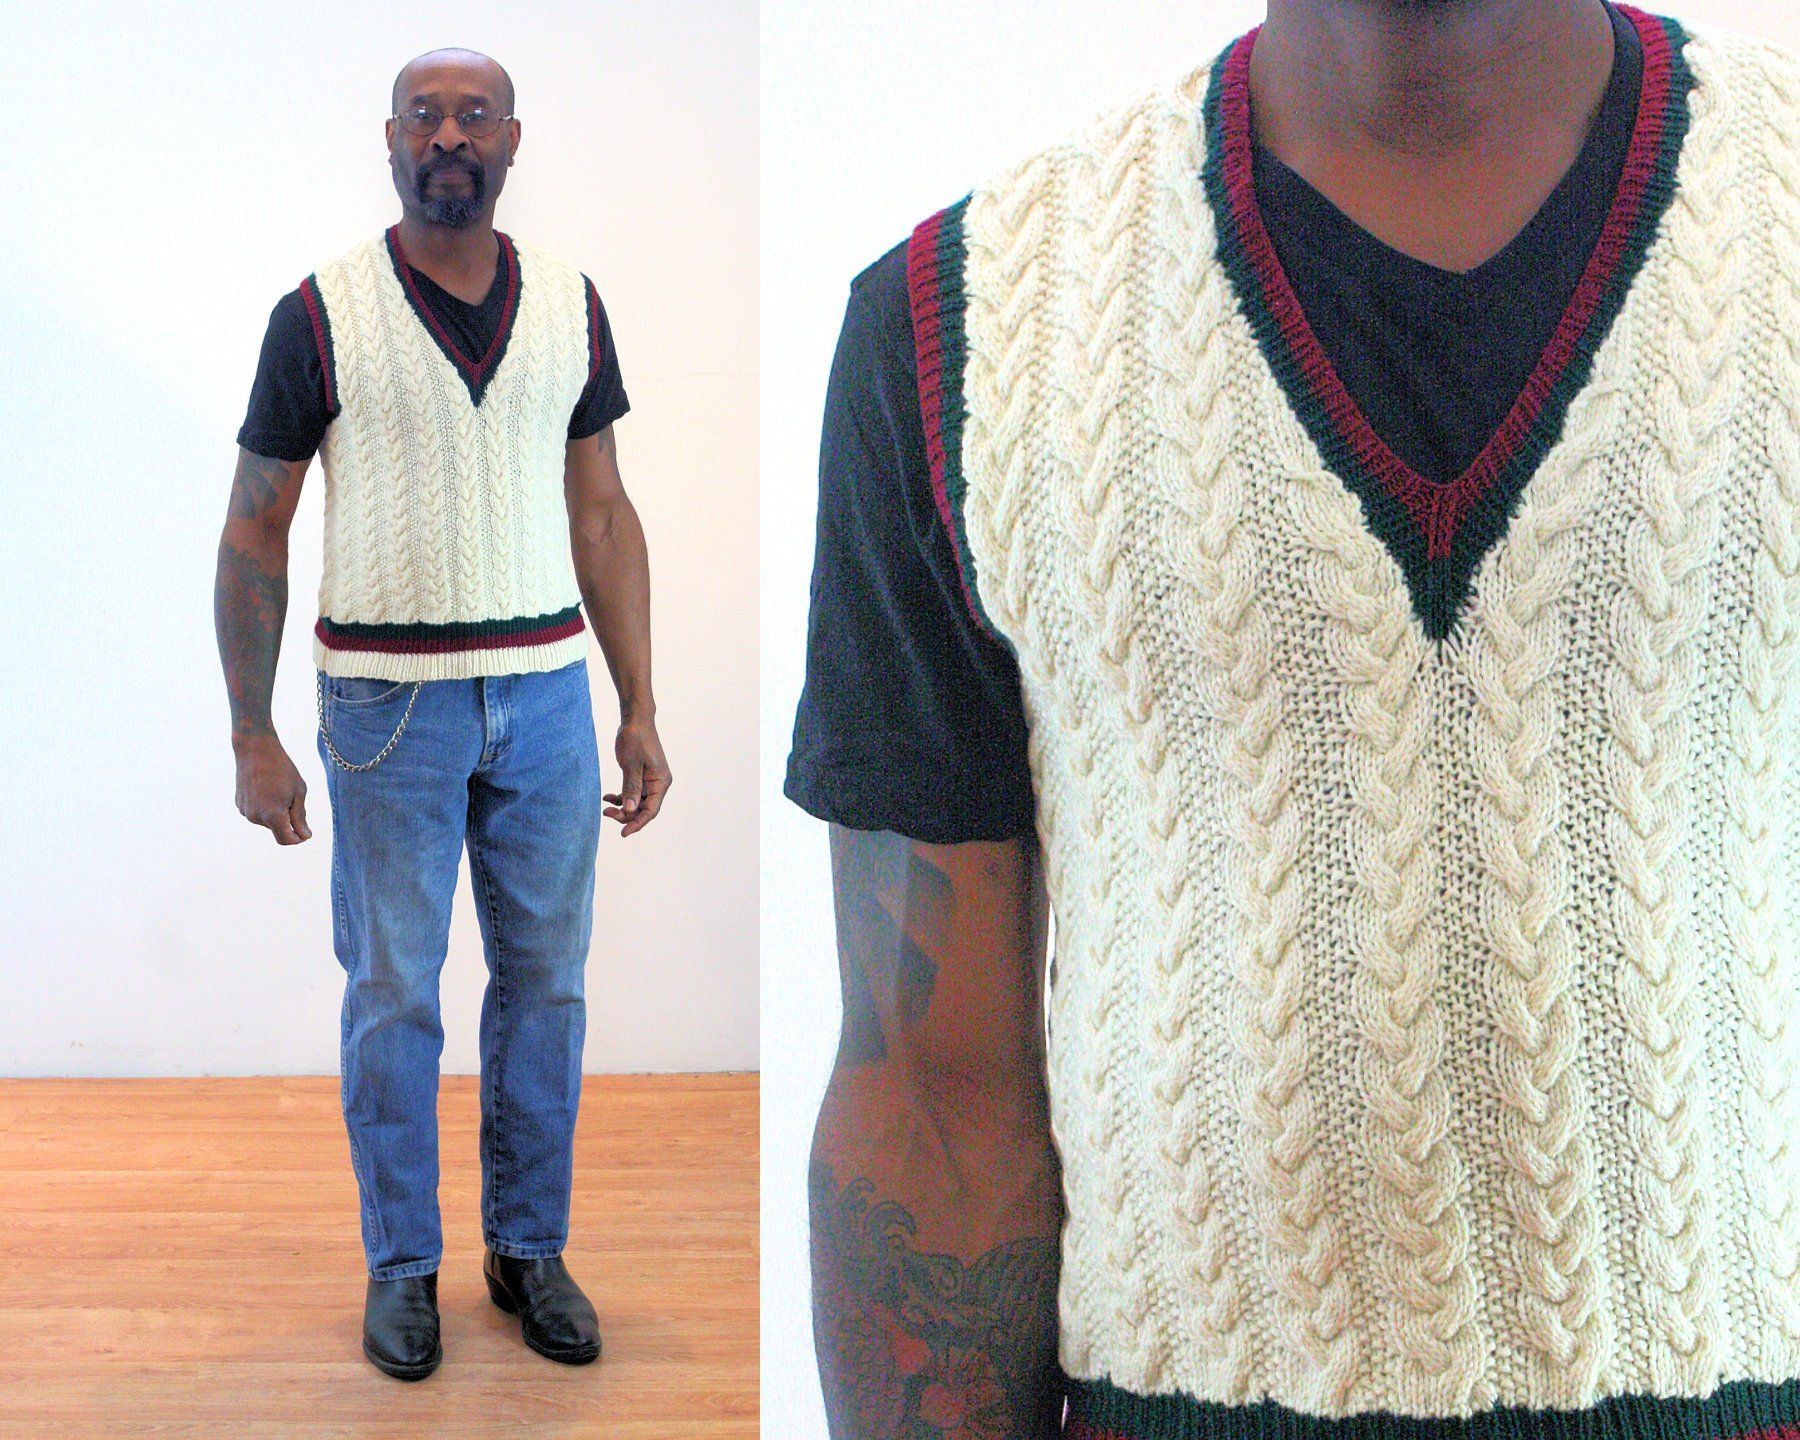 70s Sweater Vest S Men S Vintage Preppy Wool Cream Cable Knit Pullover V Neck Red Green Trim Sleeveless Jumper Vintage Men Sleeveless Jumper Knitted Pullover